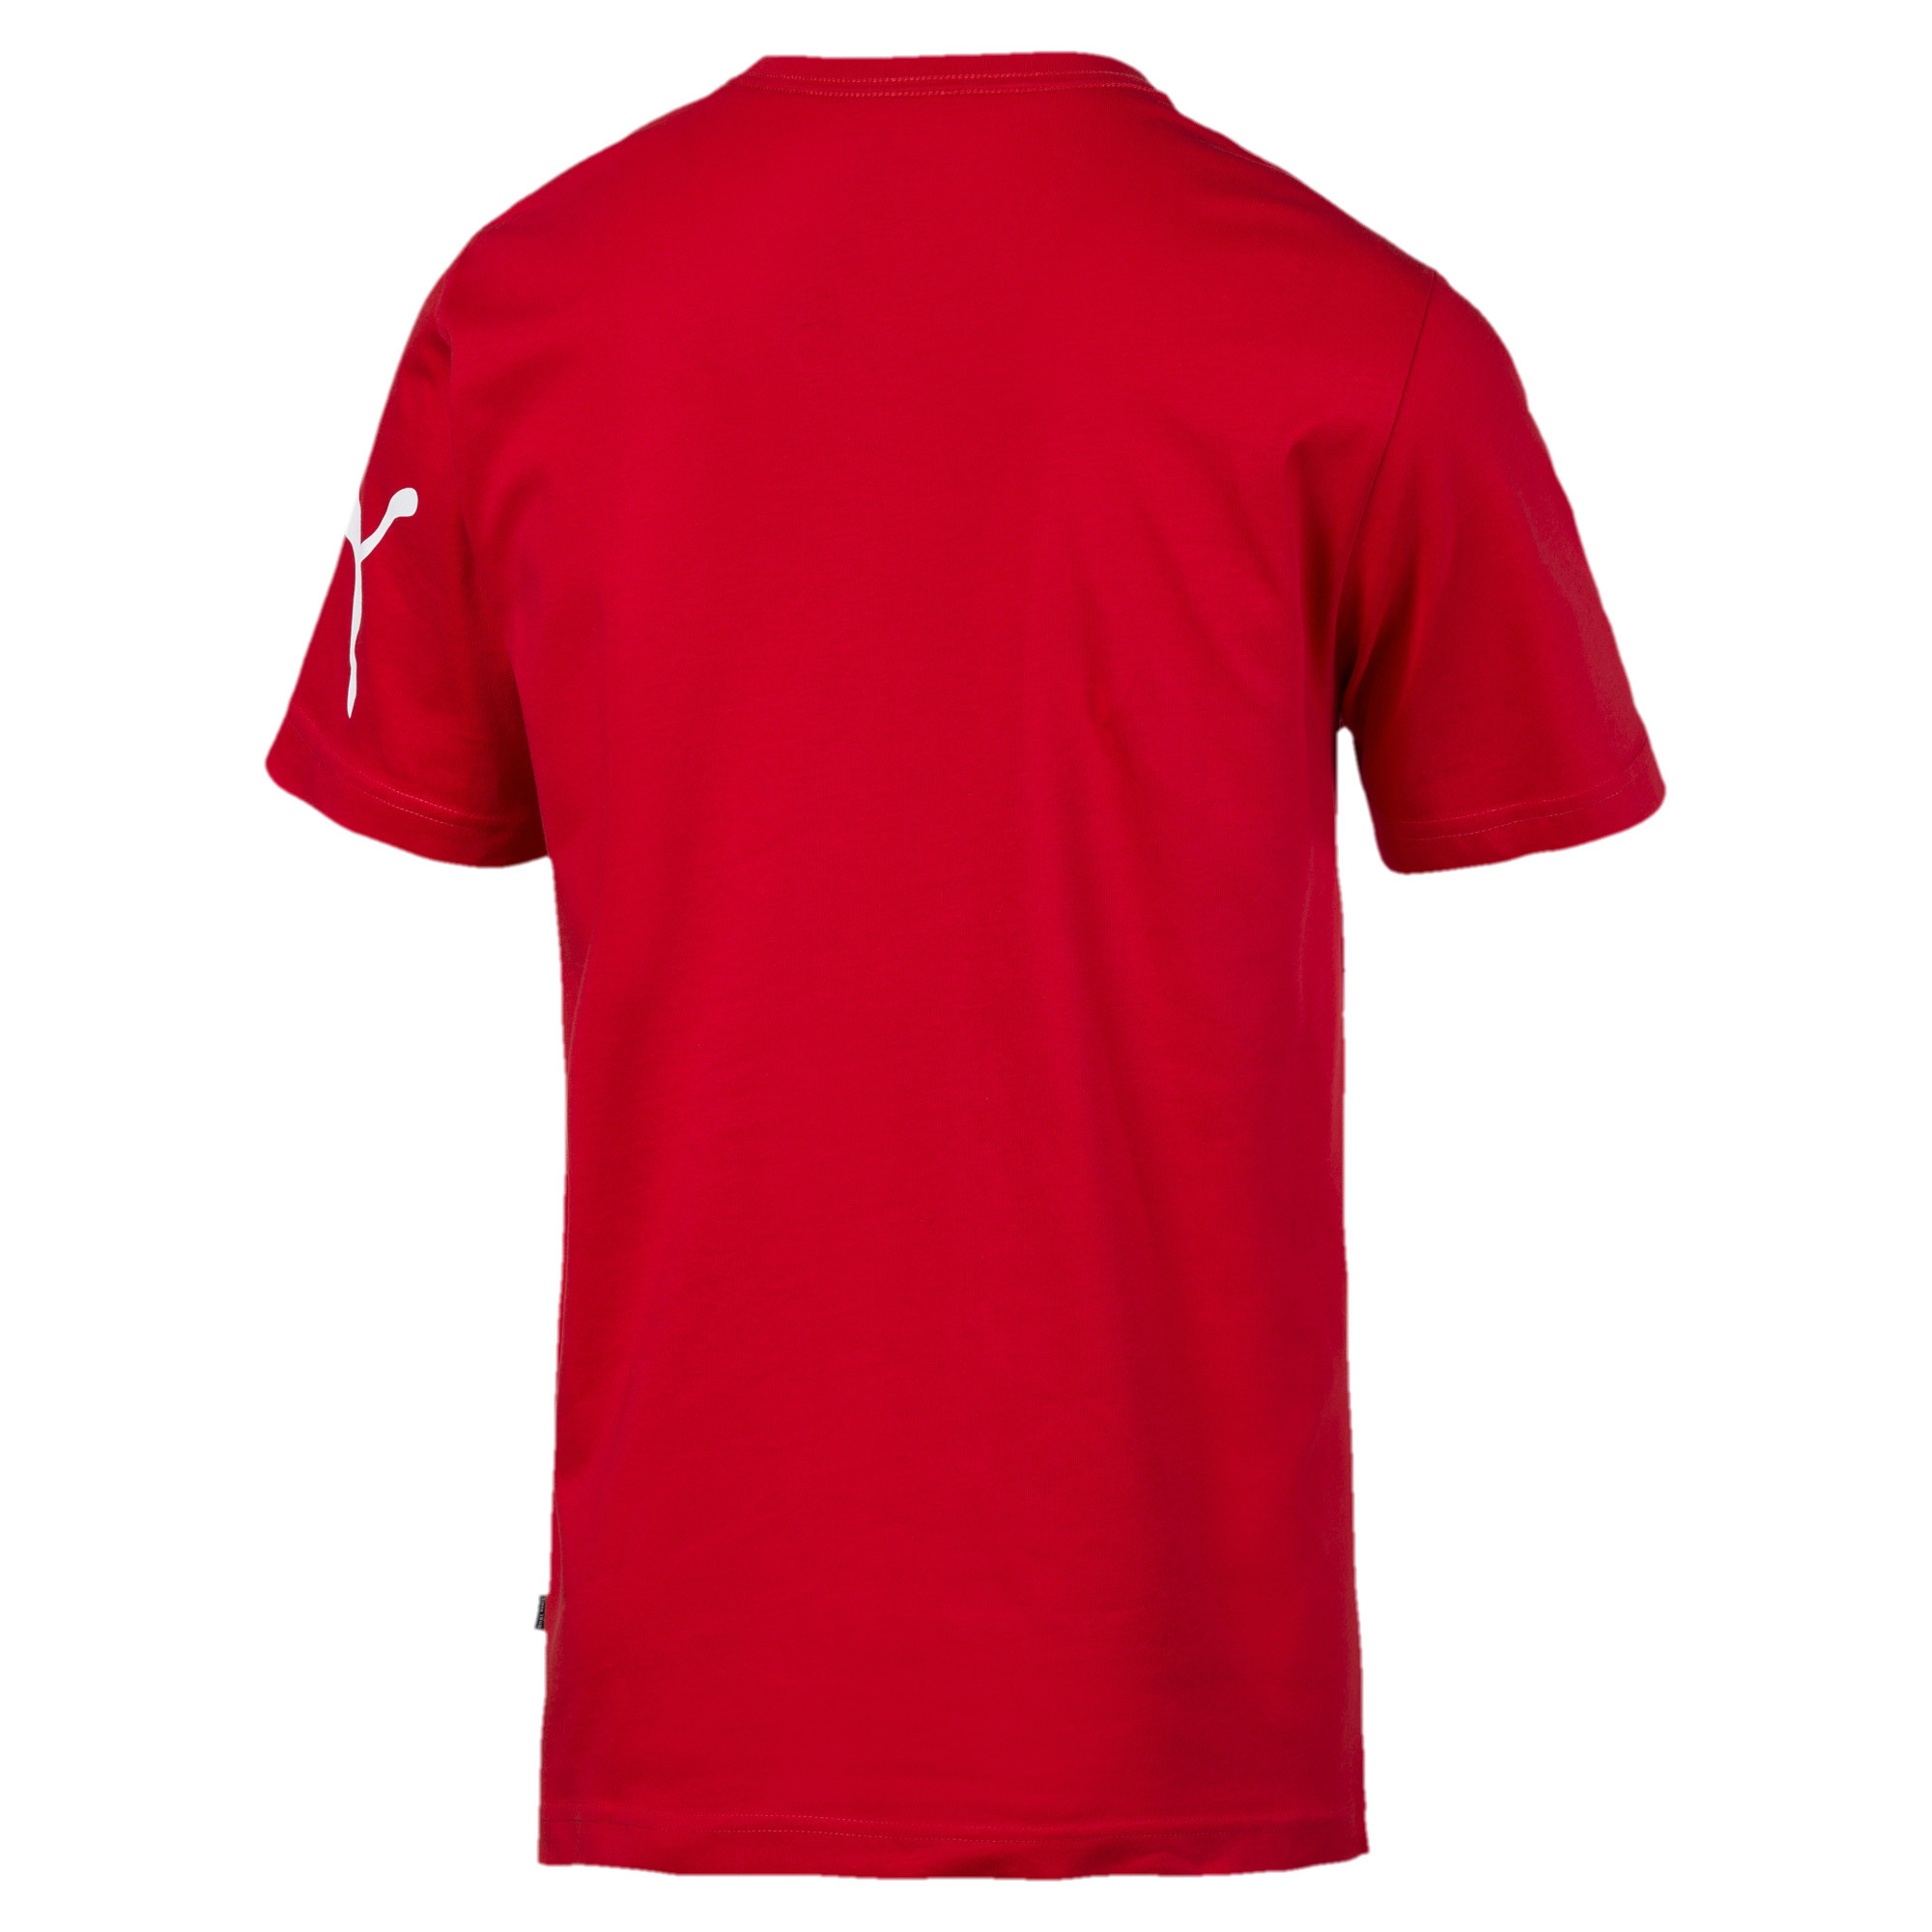 PUMA-Big-Logo-Men-039-s-Tee-Men-Tee-Basics thumbnail 11